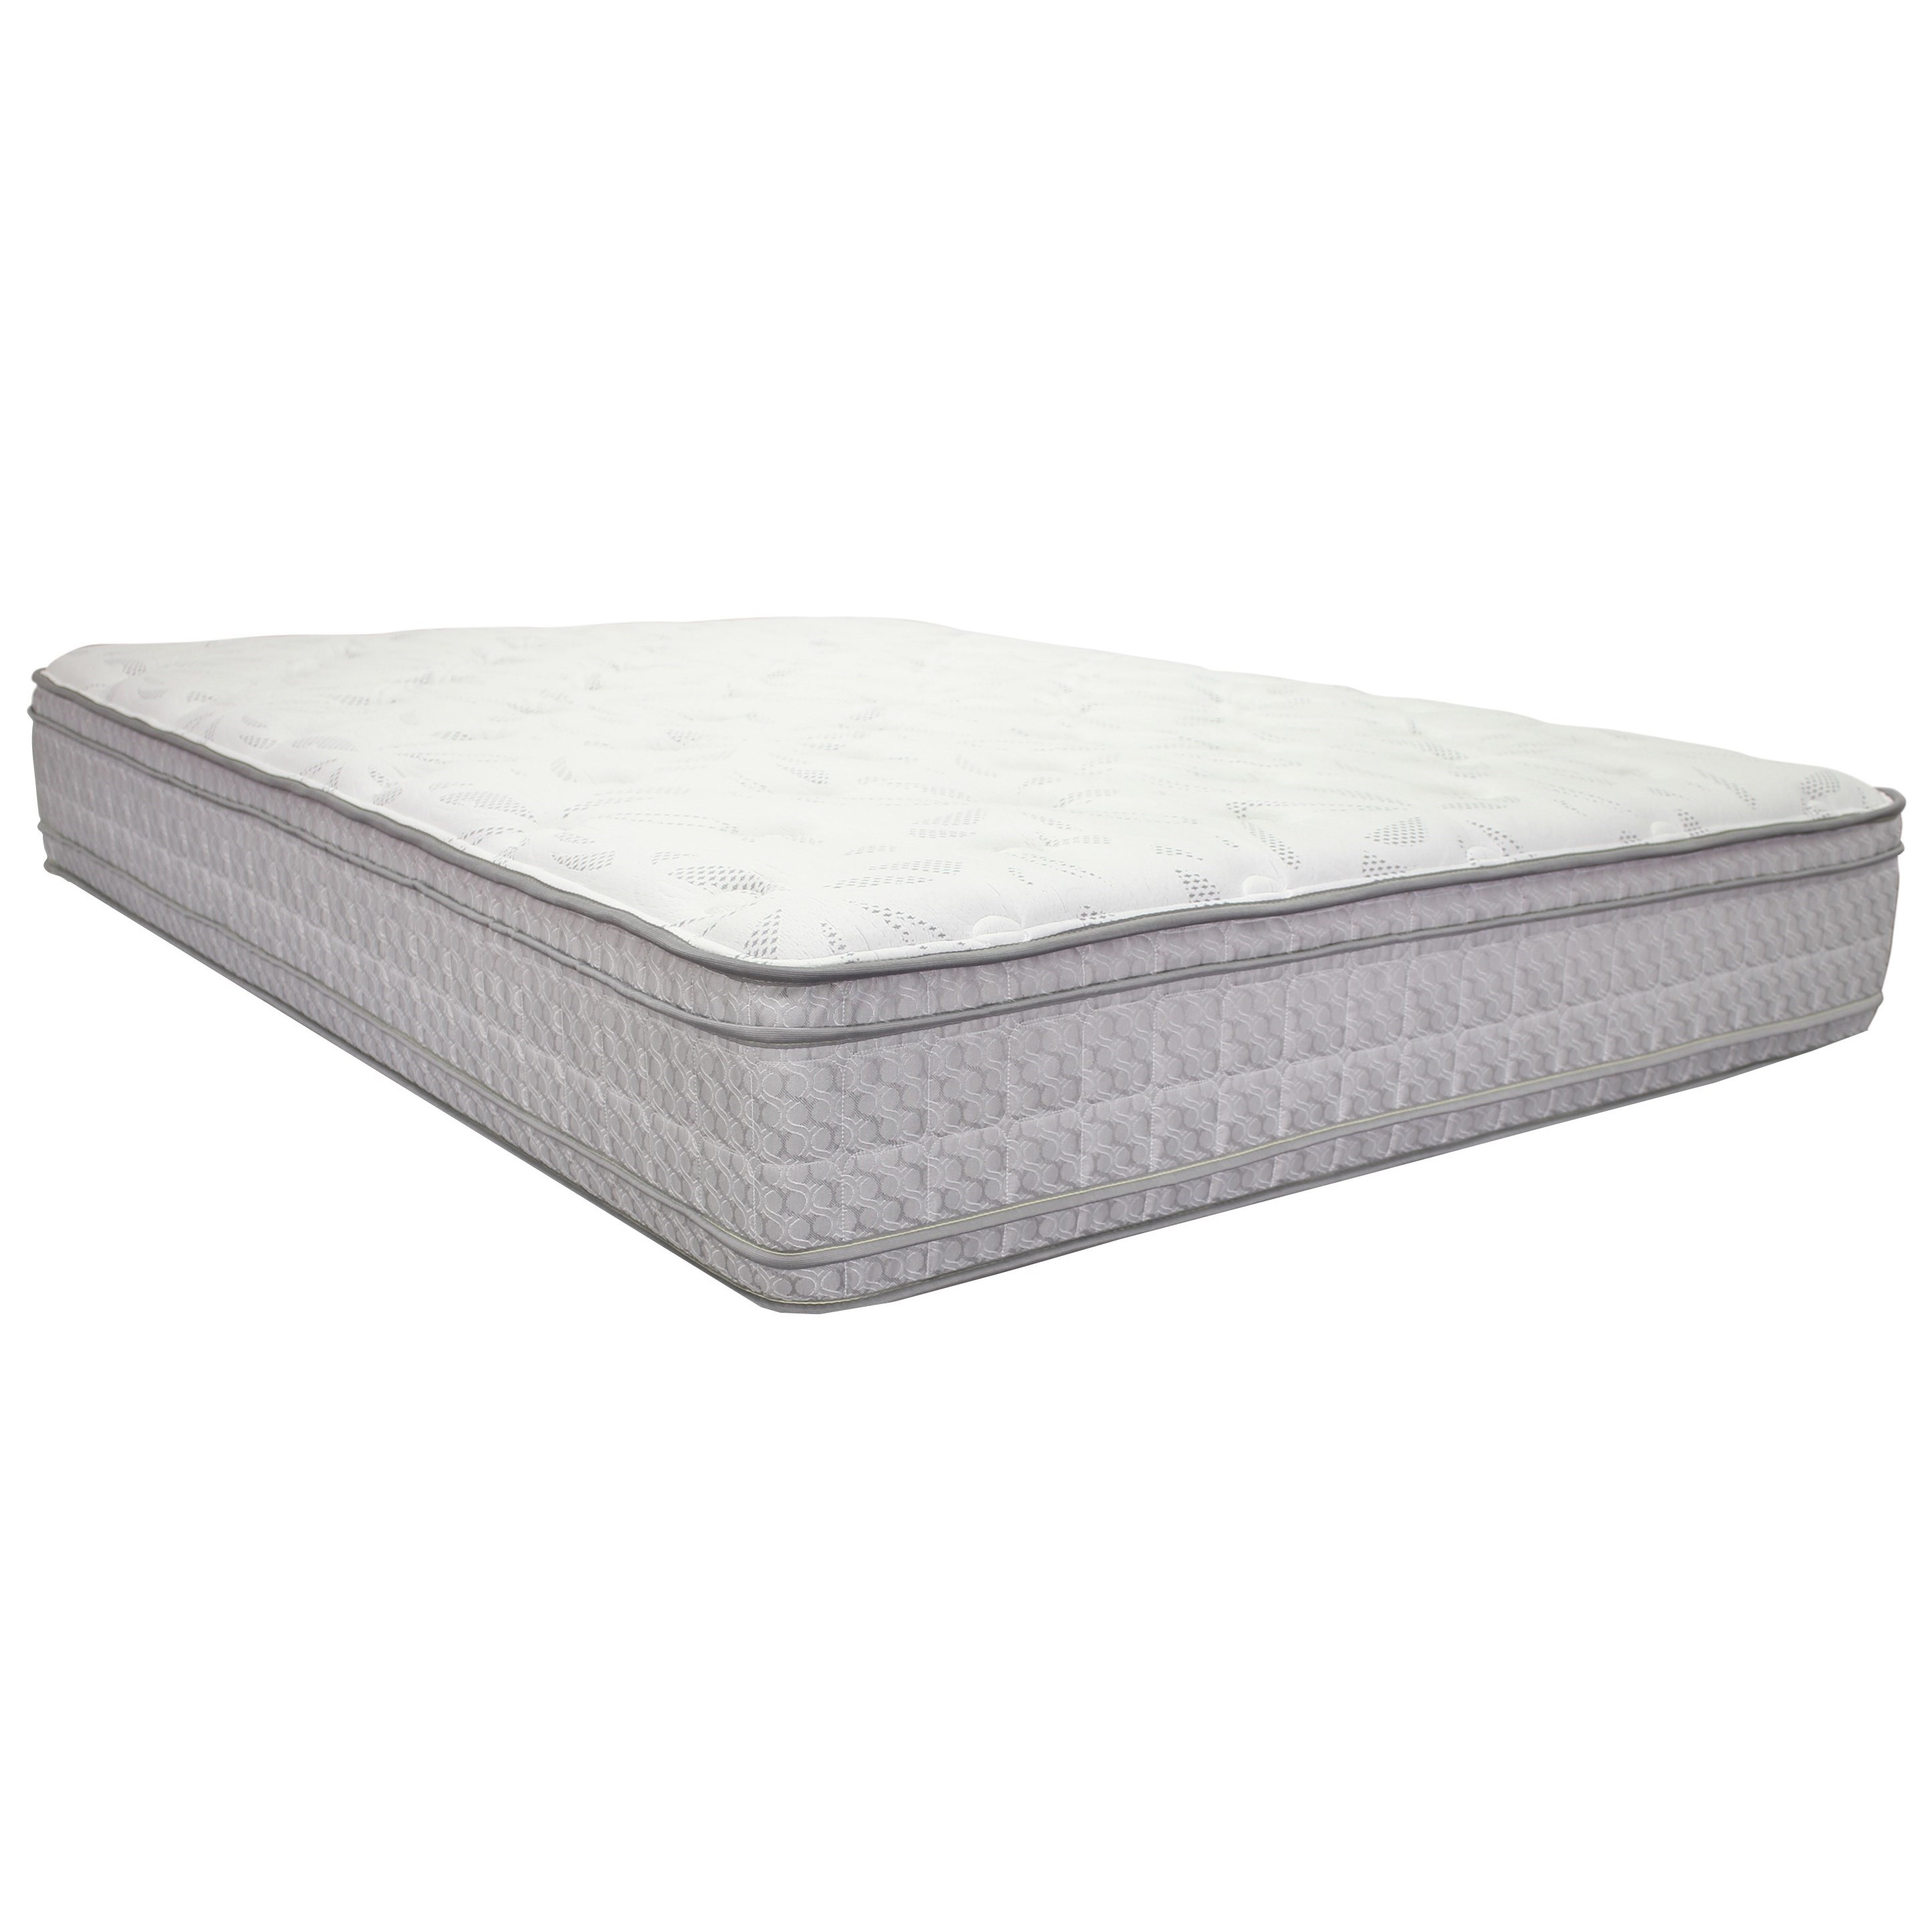 "Corsicana 2010 Merrick Euro Top Queen 12"" Two Sided Euro Top Mattress - Item Number: 2010-Q"